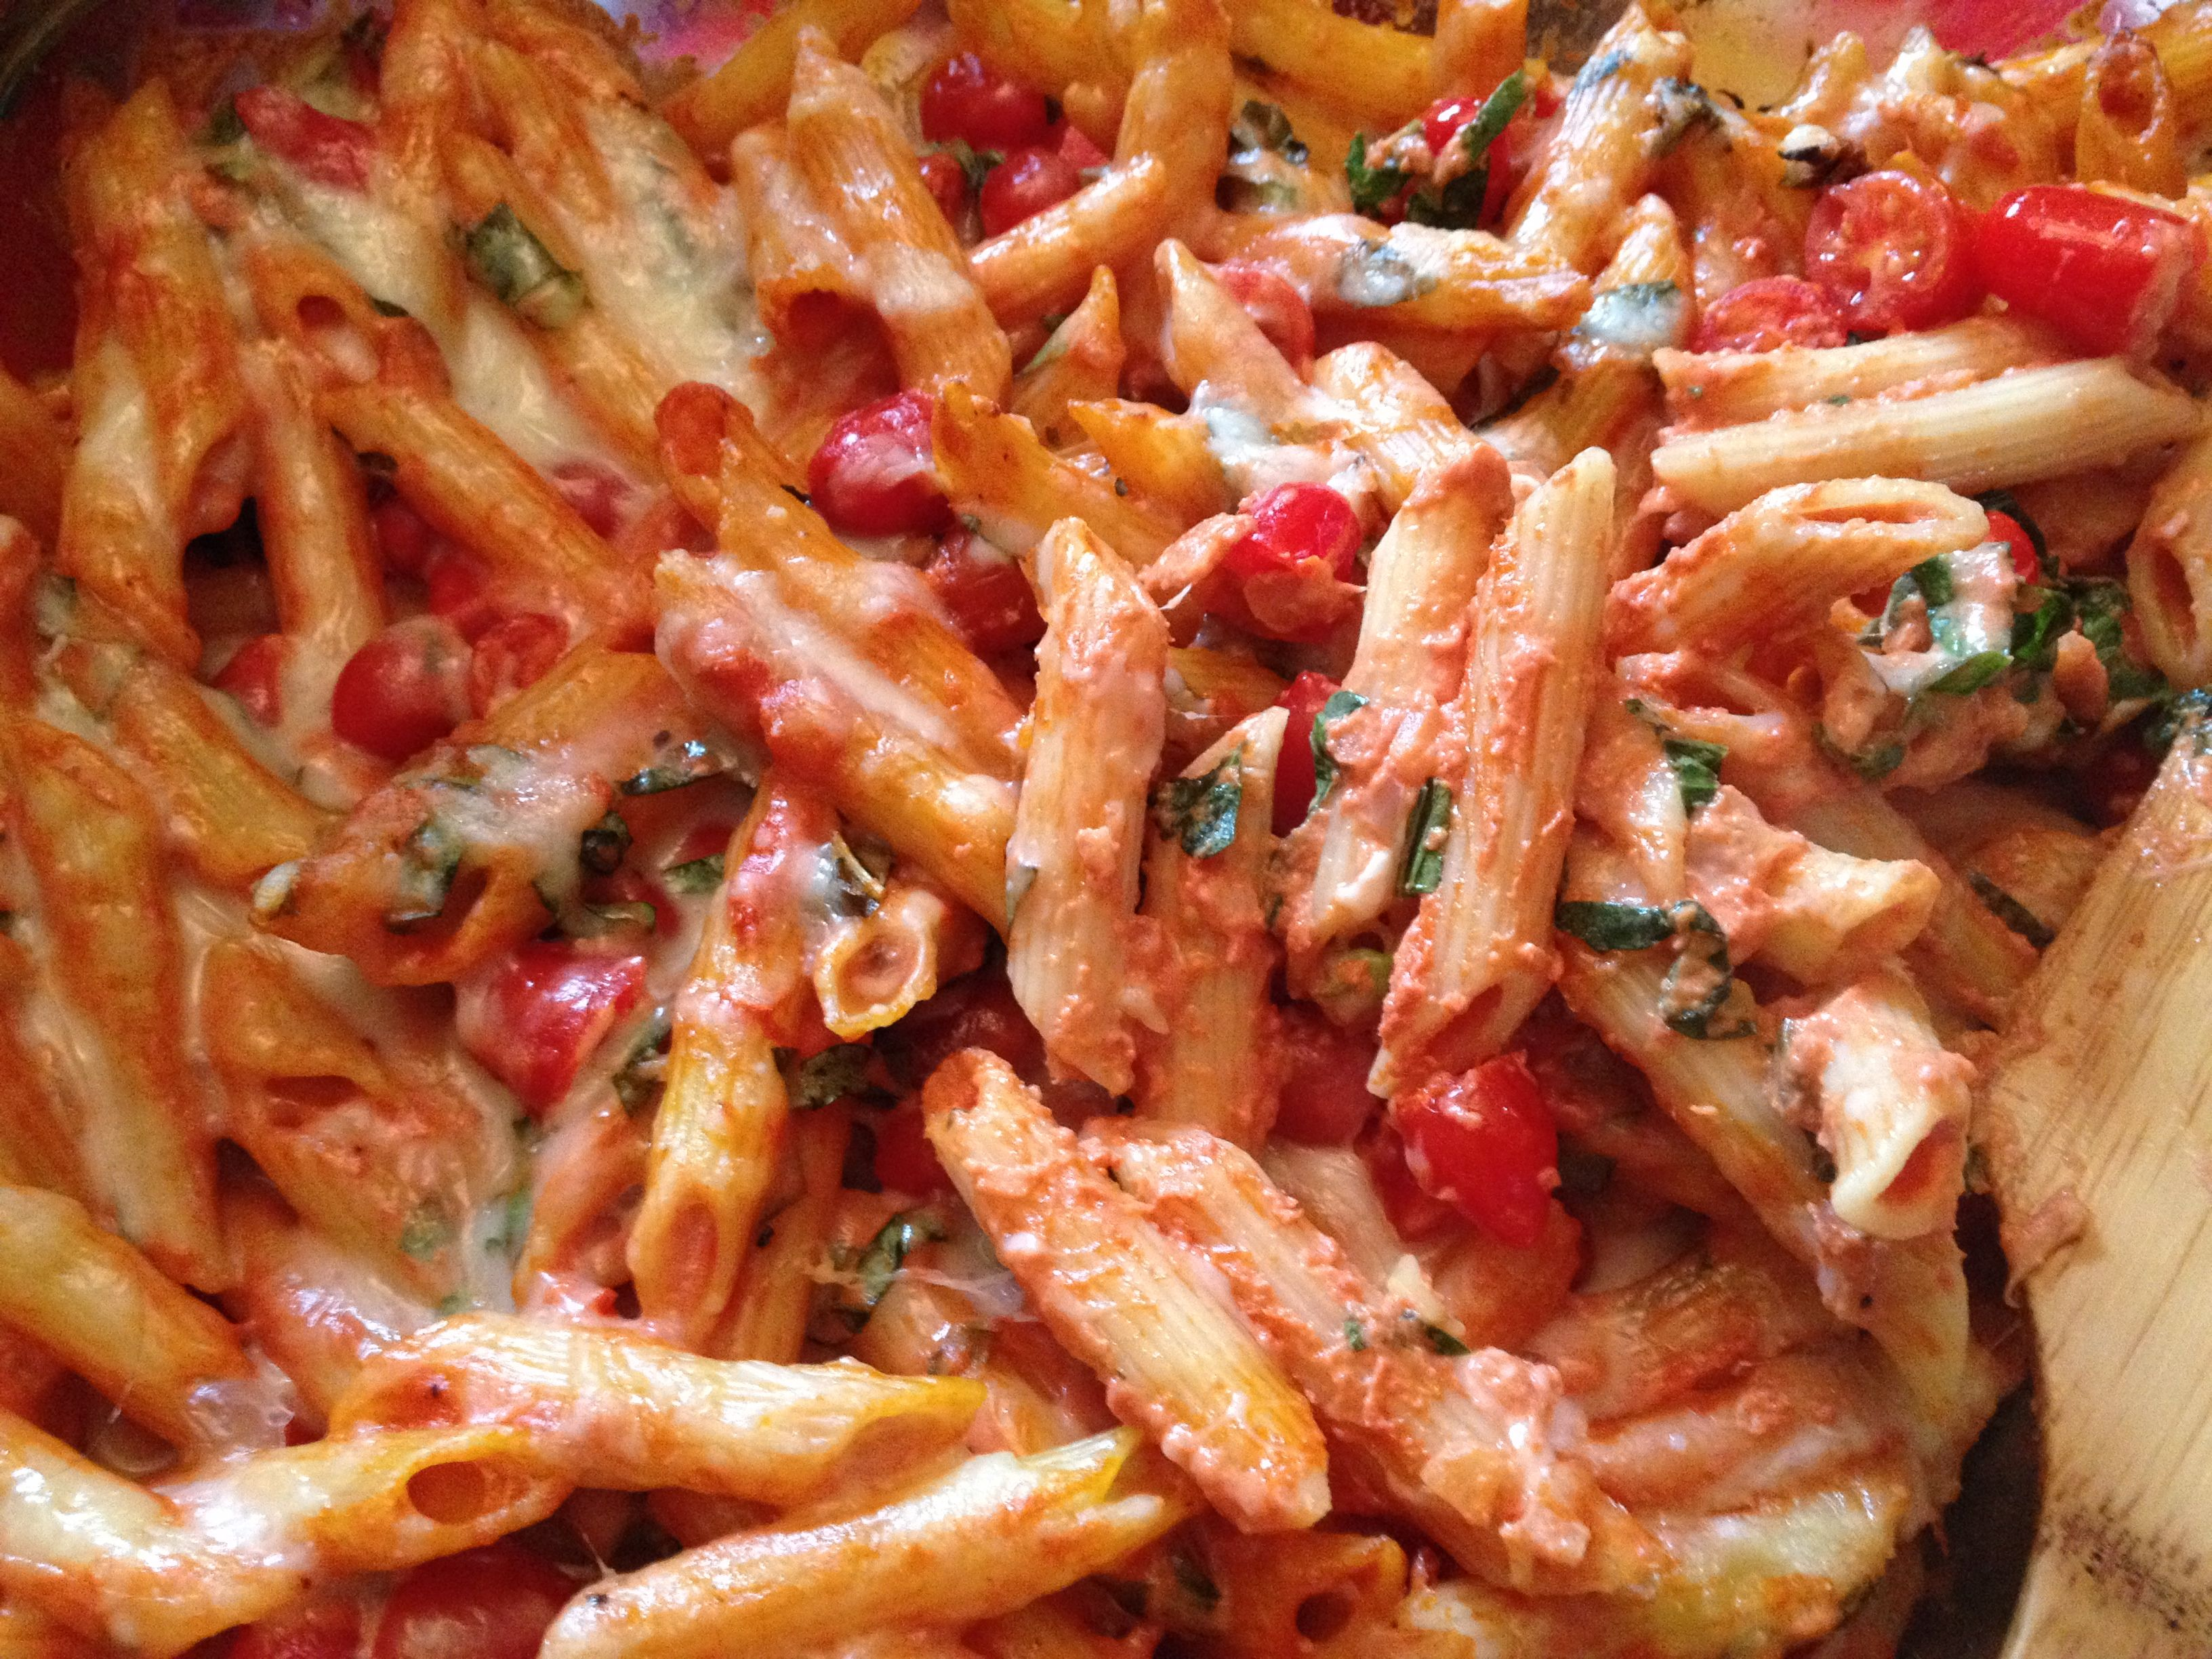 Creamy Pasta Bake with Cherry Tomatoes and Basil